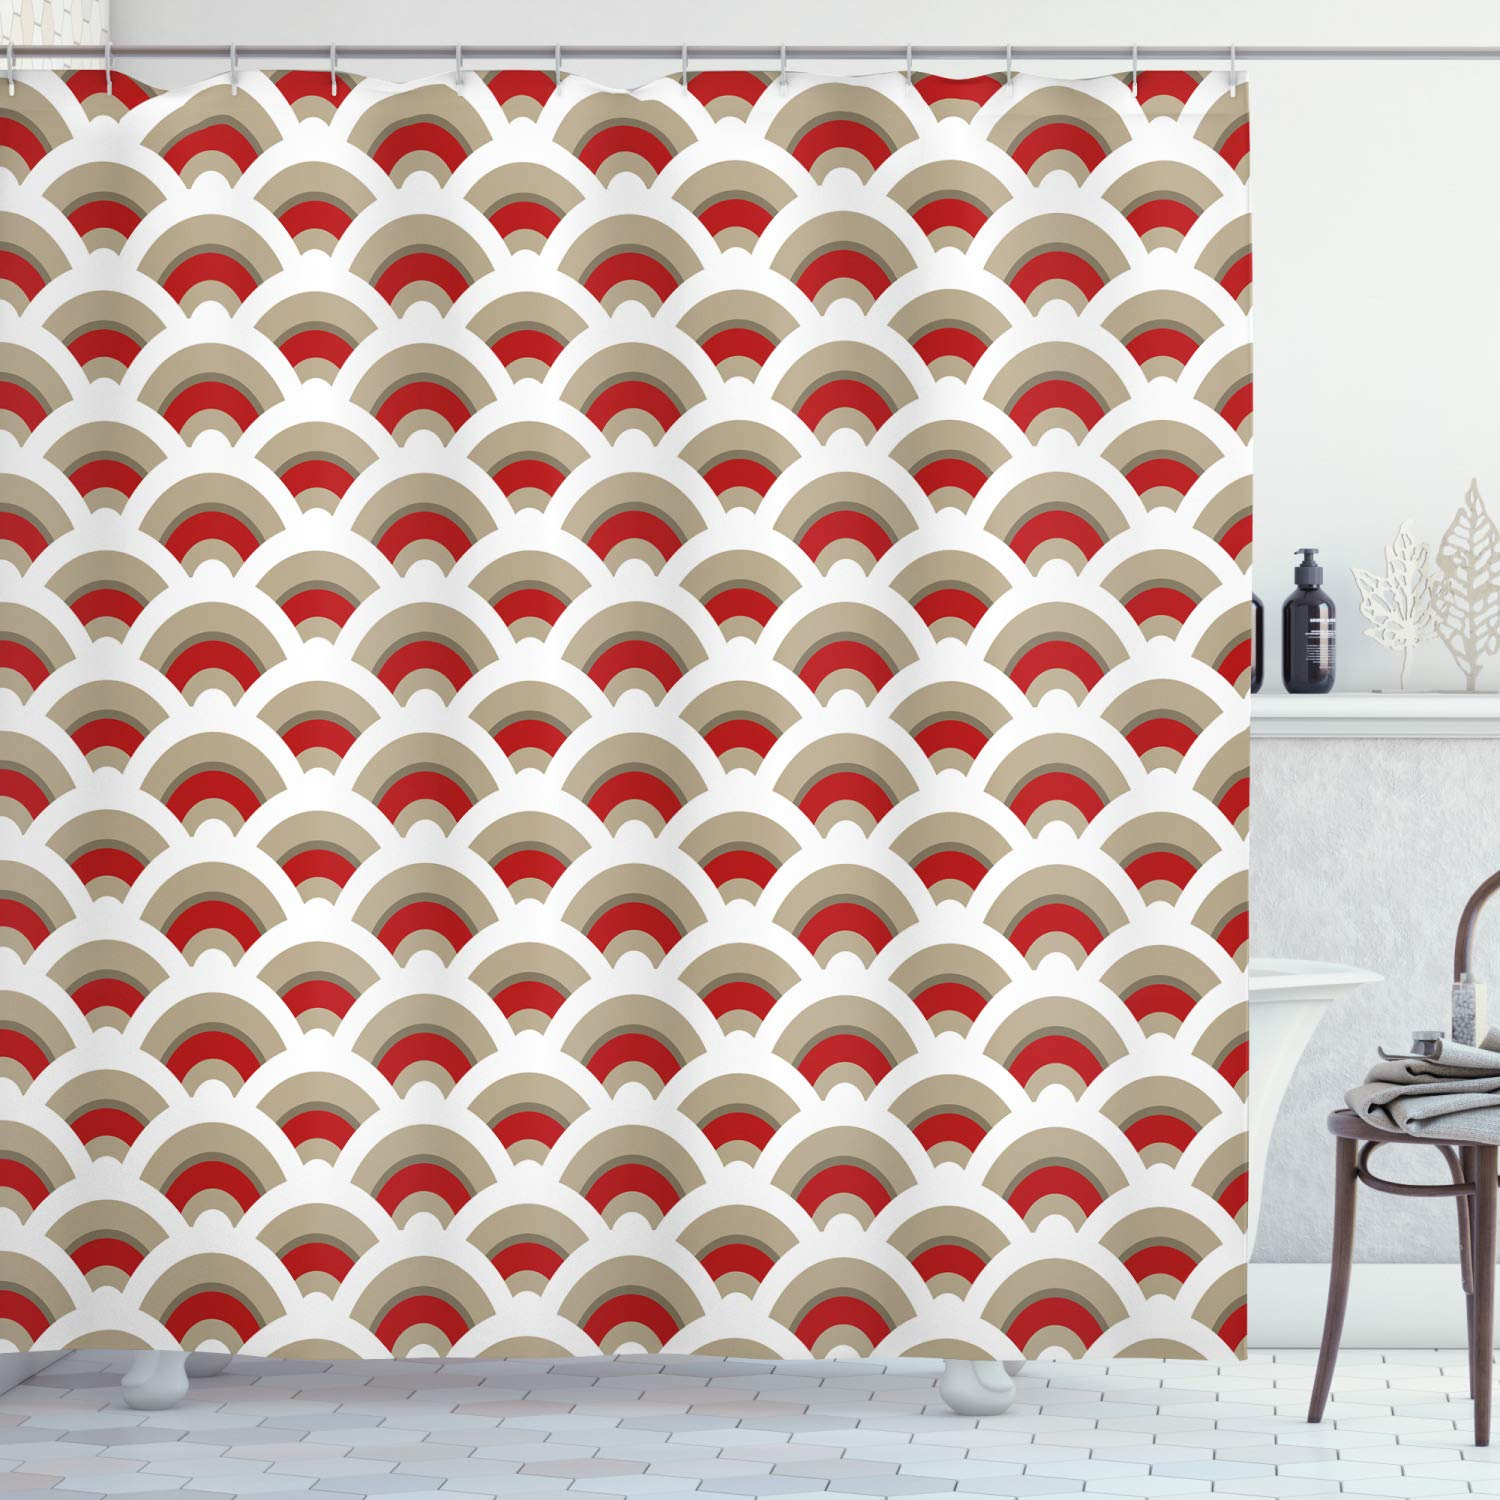 """Ambesonne Abstract Shower Curtain, Oriental Scallop Pattern Inspired by Traditional Moroccan Design, Cloth Fabric Bathroom Decor Set with Hooks, 70"""" Long, Orange White"""